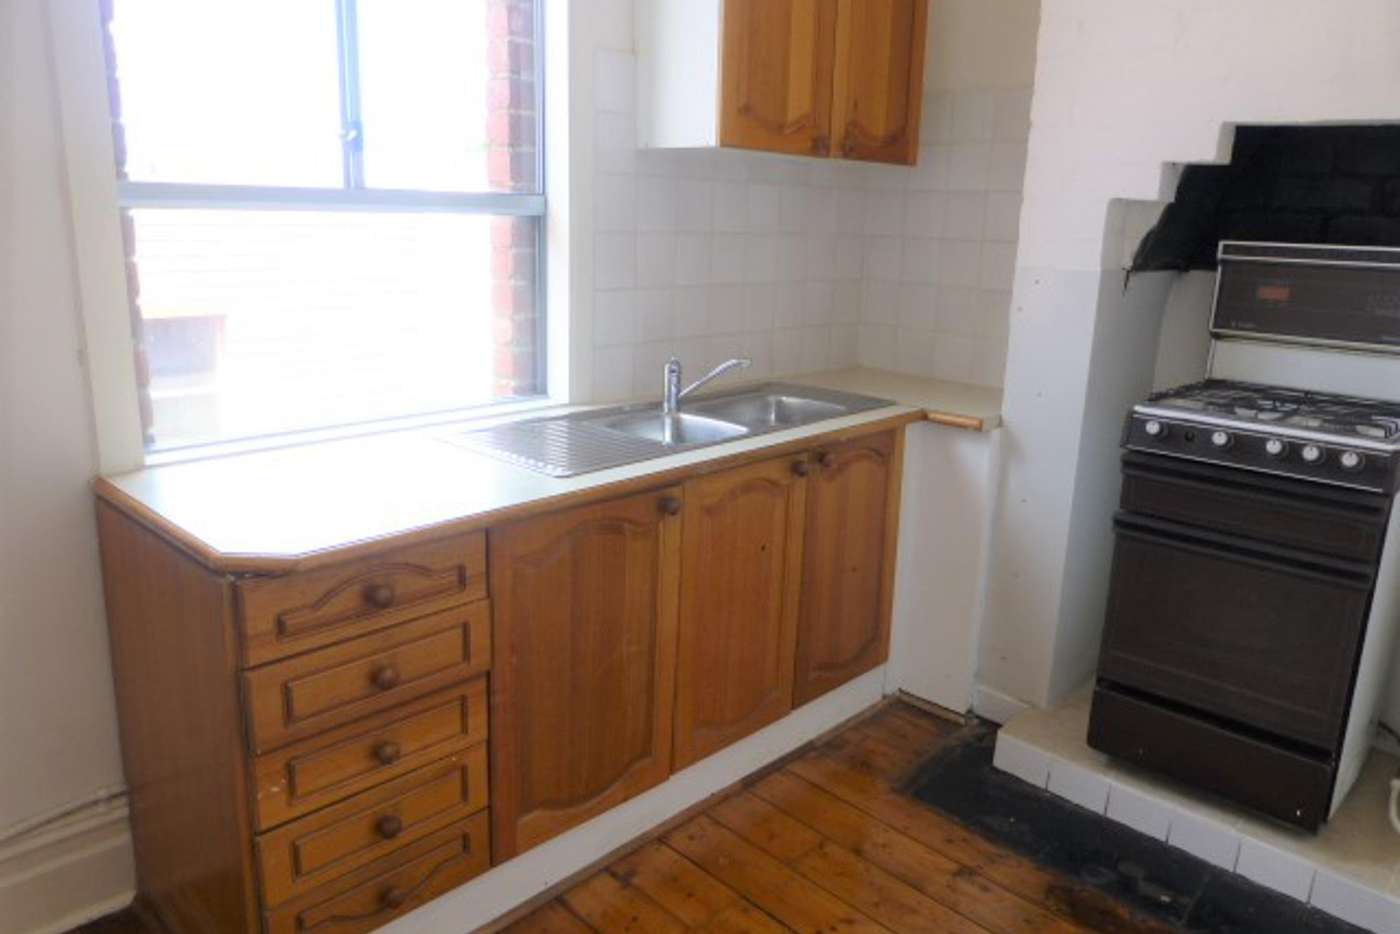 Main view of Homely apartment listing, 1/96 Victoria Street, Richmond VIC 3121